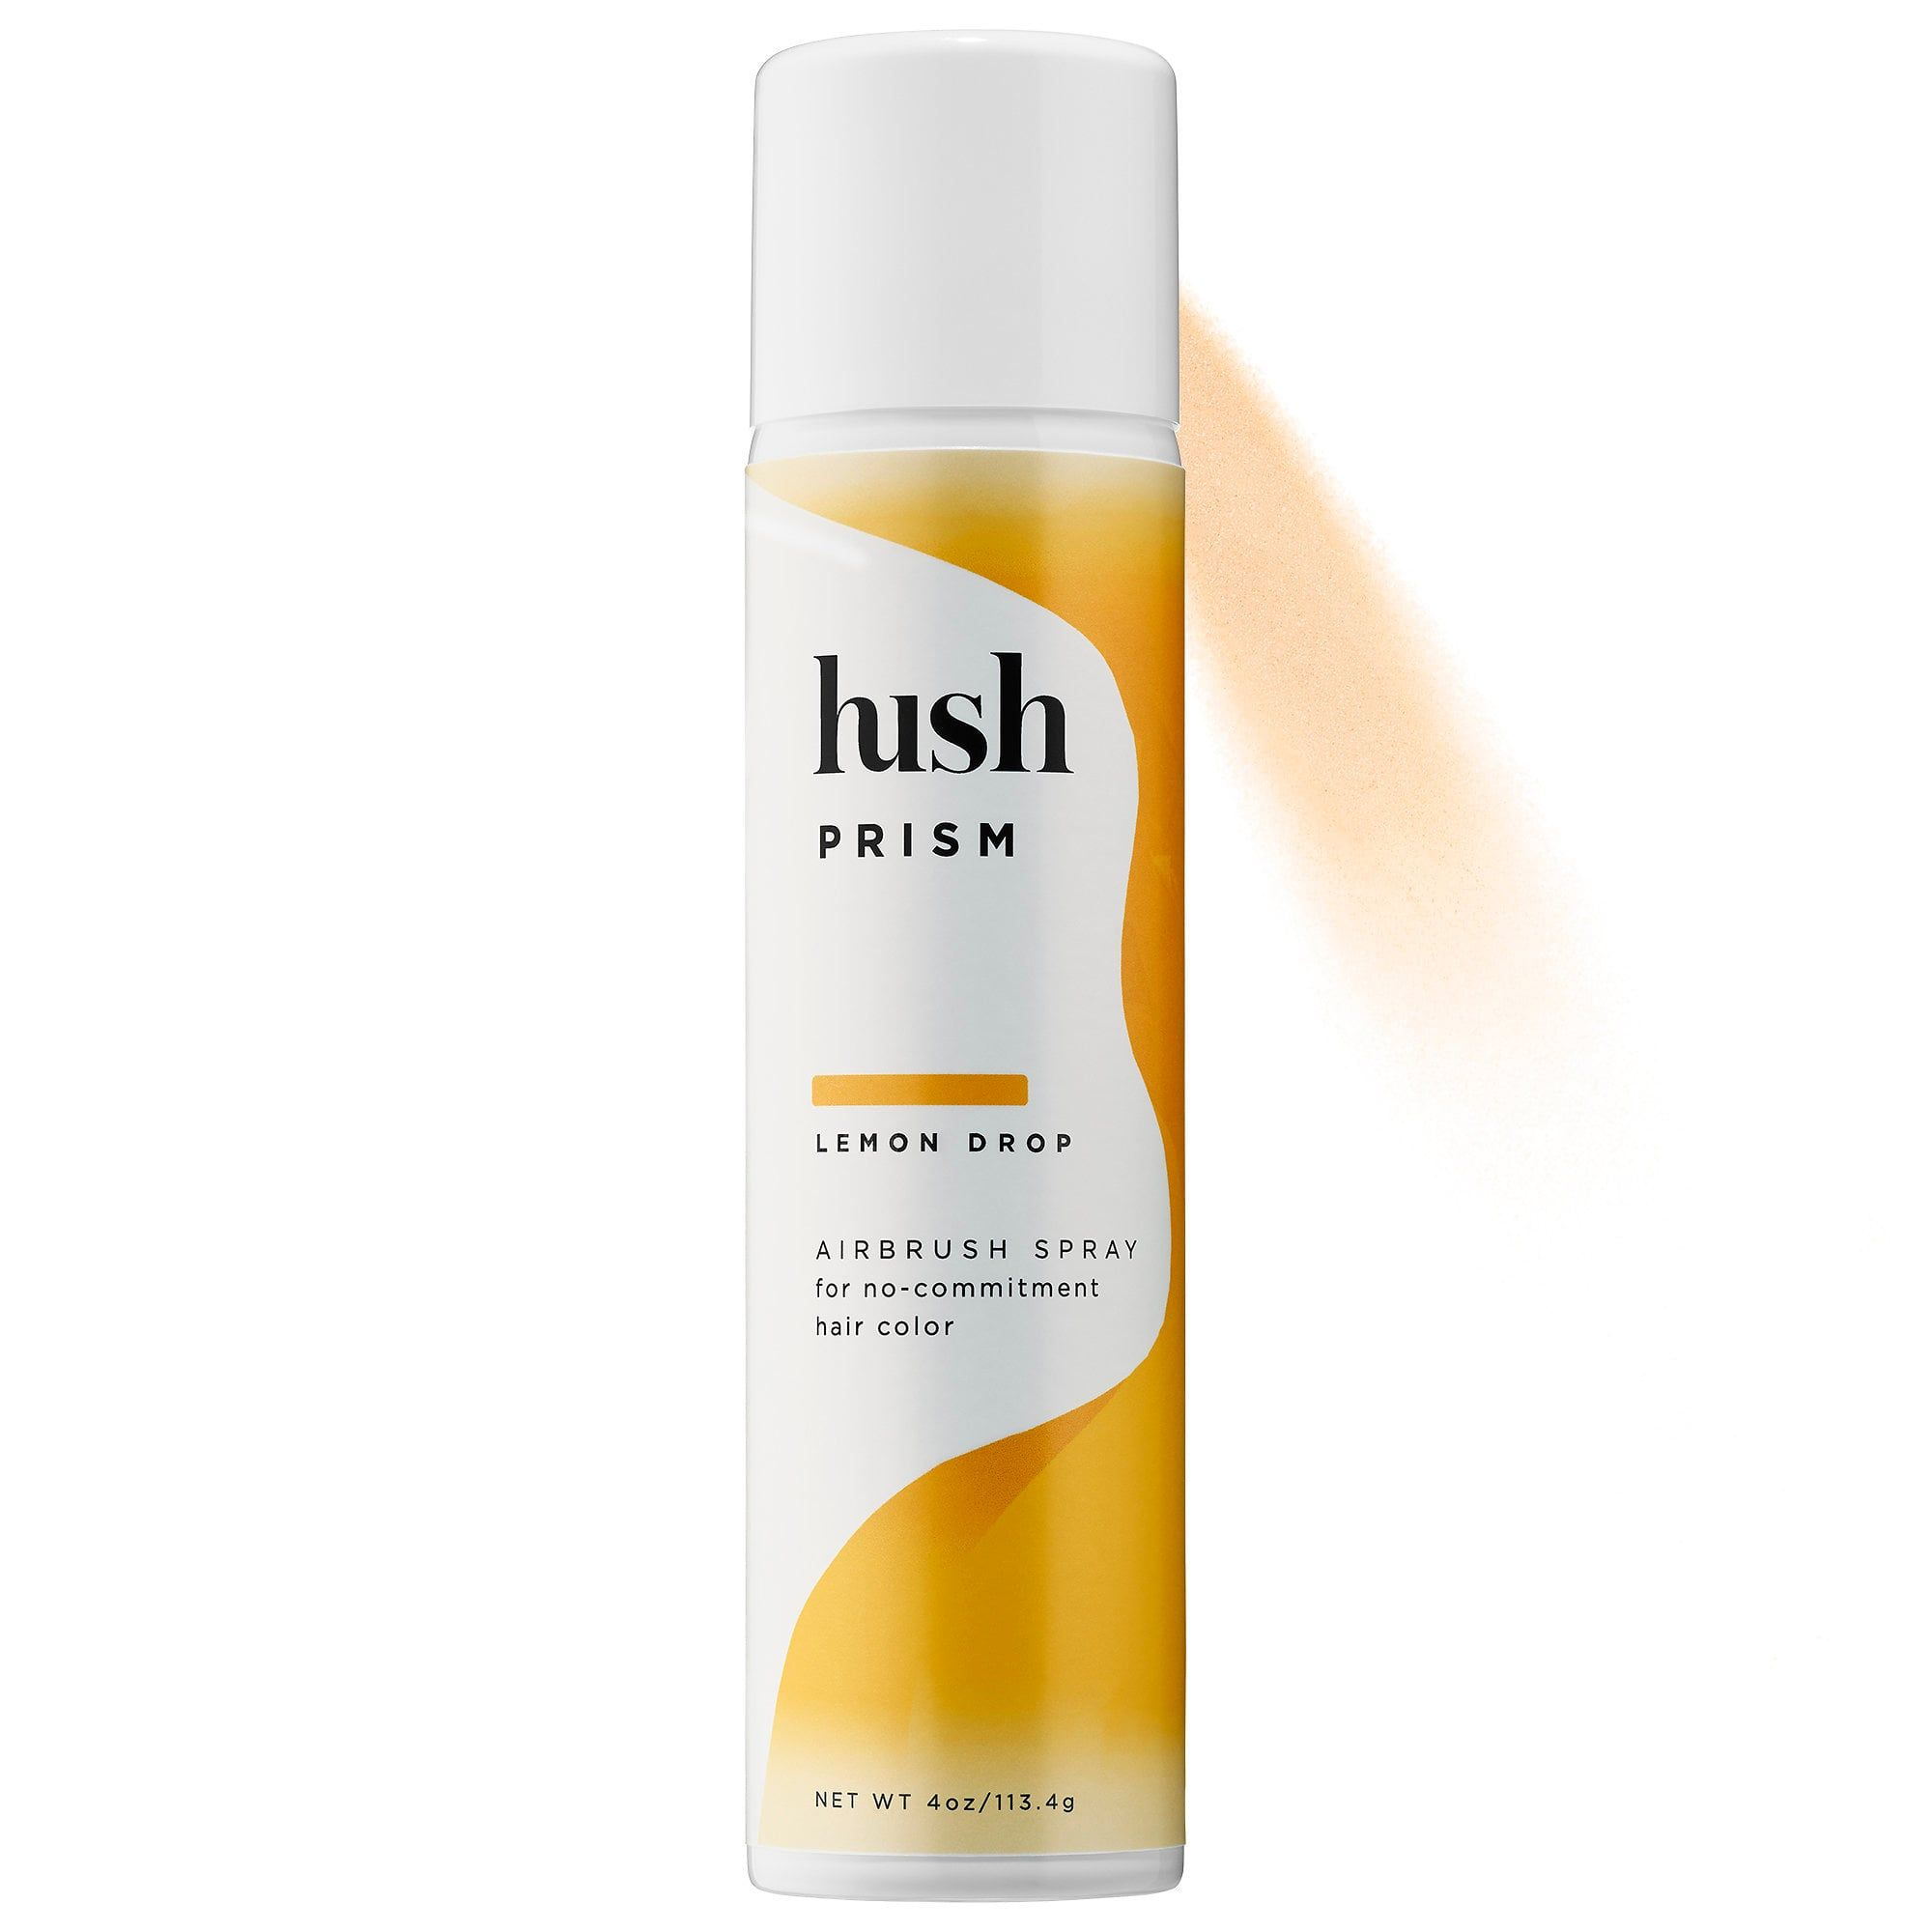 Hush Prism Airbrush Spray sephora.com $24.00 SHOP NOW The Hush Prism Airbrush Sprays come in a variety of seven pretty colors. They're also completely buildable so that you can work up to the level of color you're envisioning.